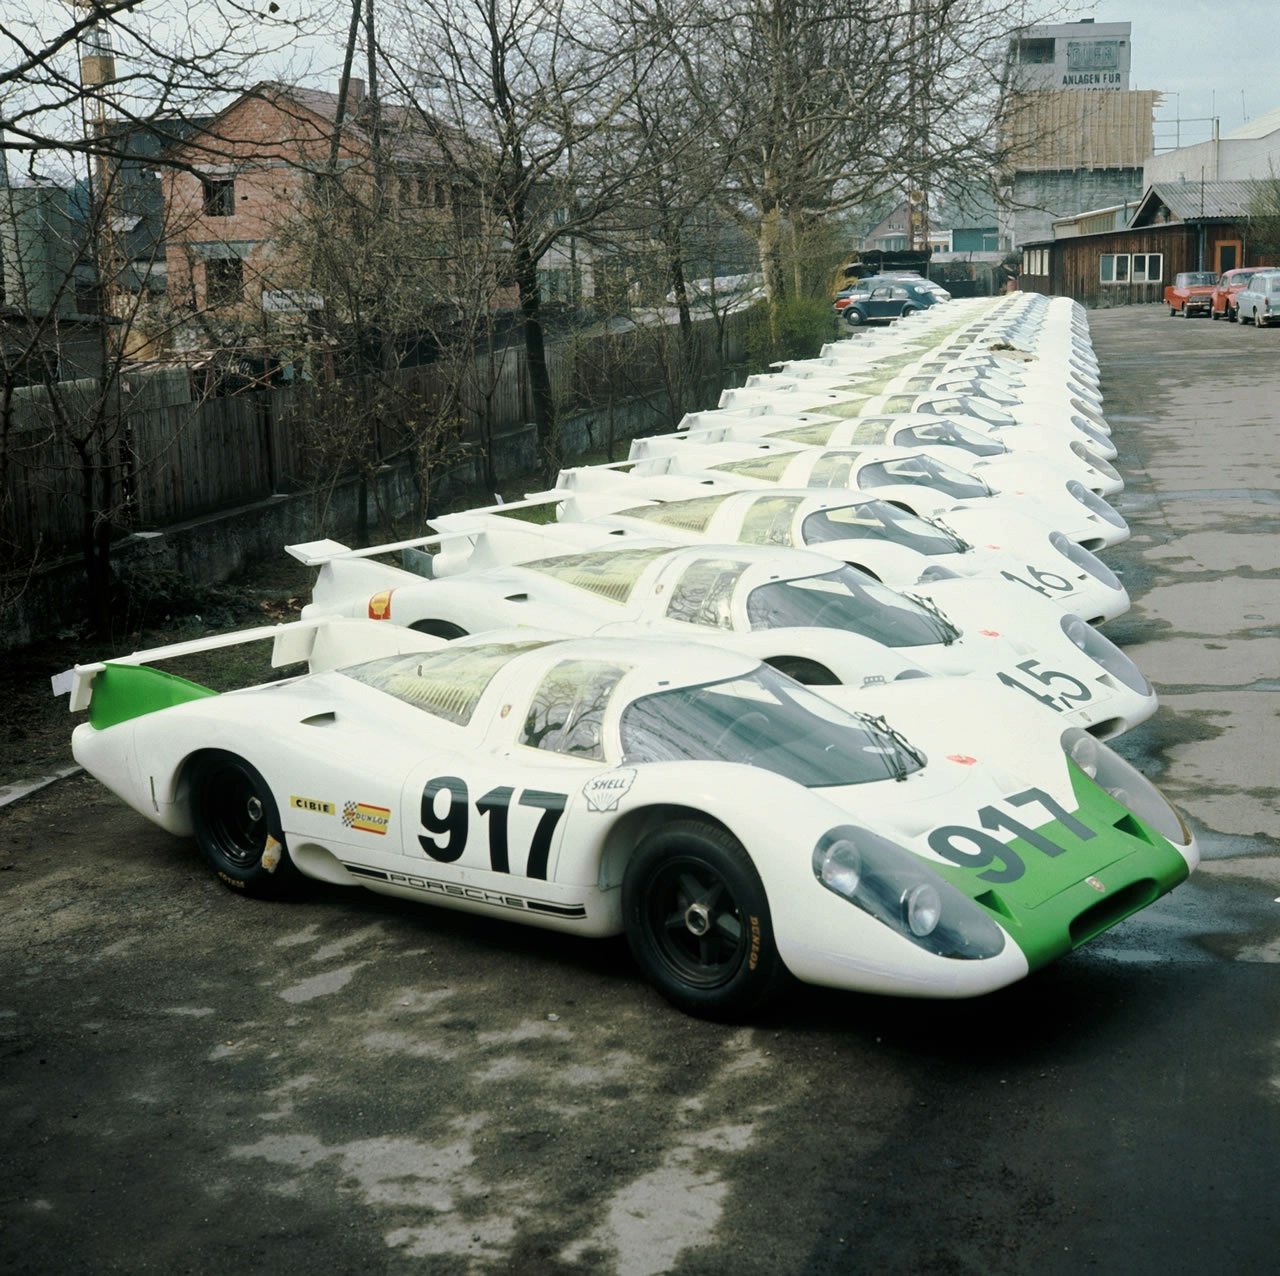 Porsche 917 photos up.